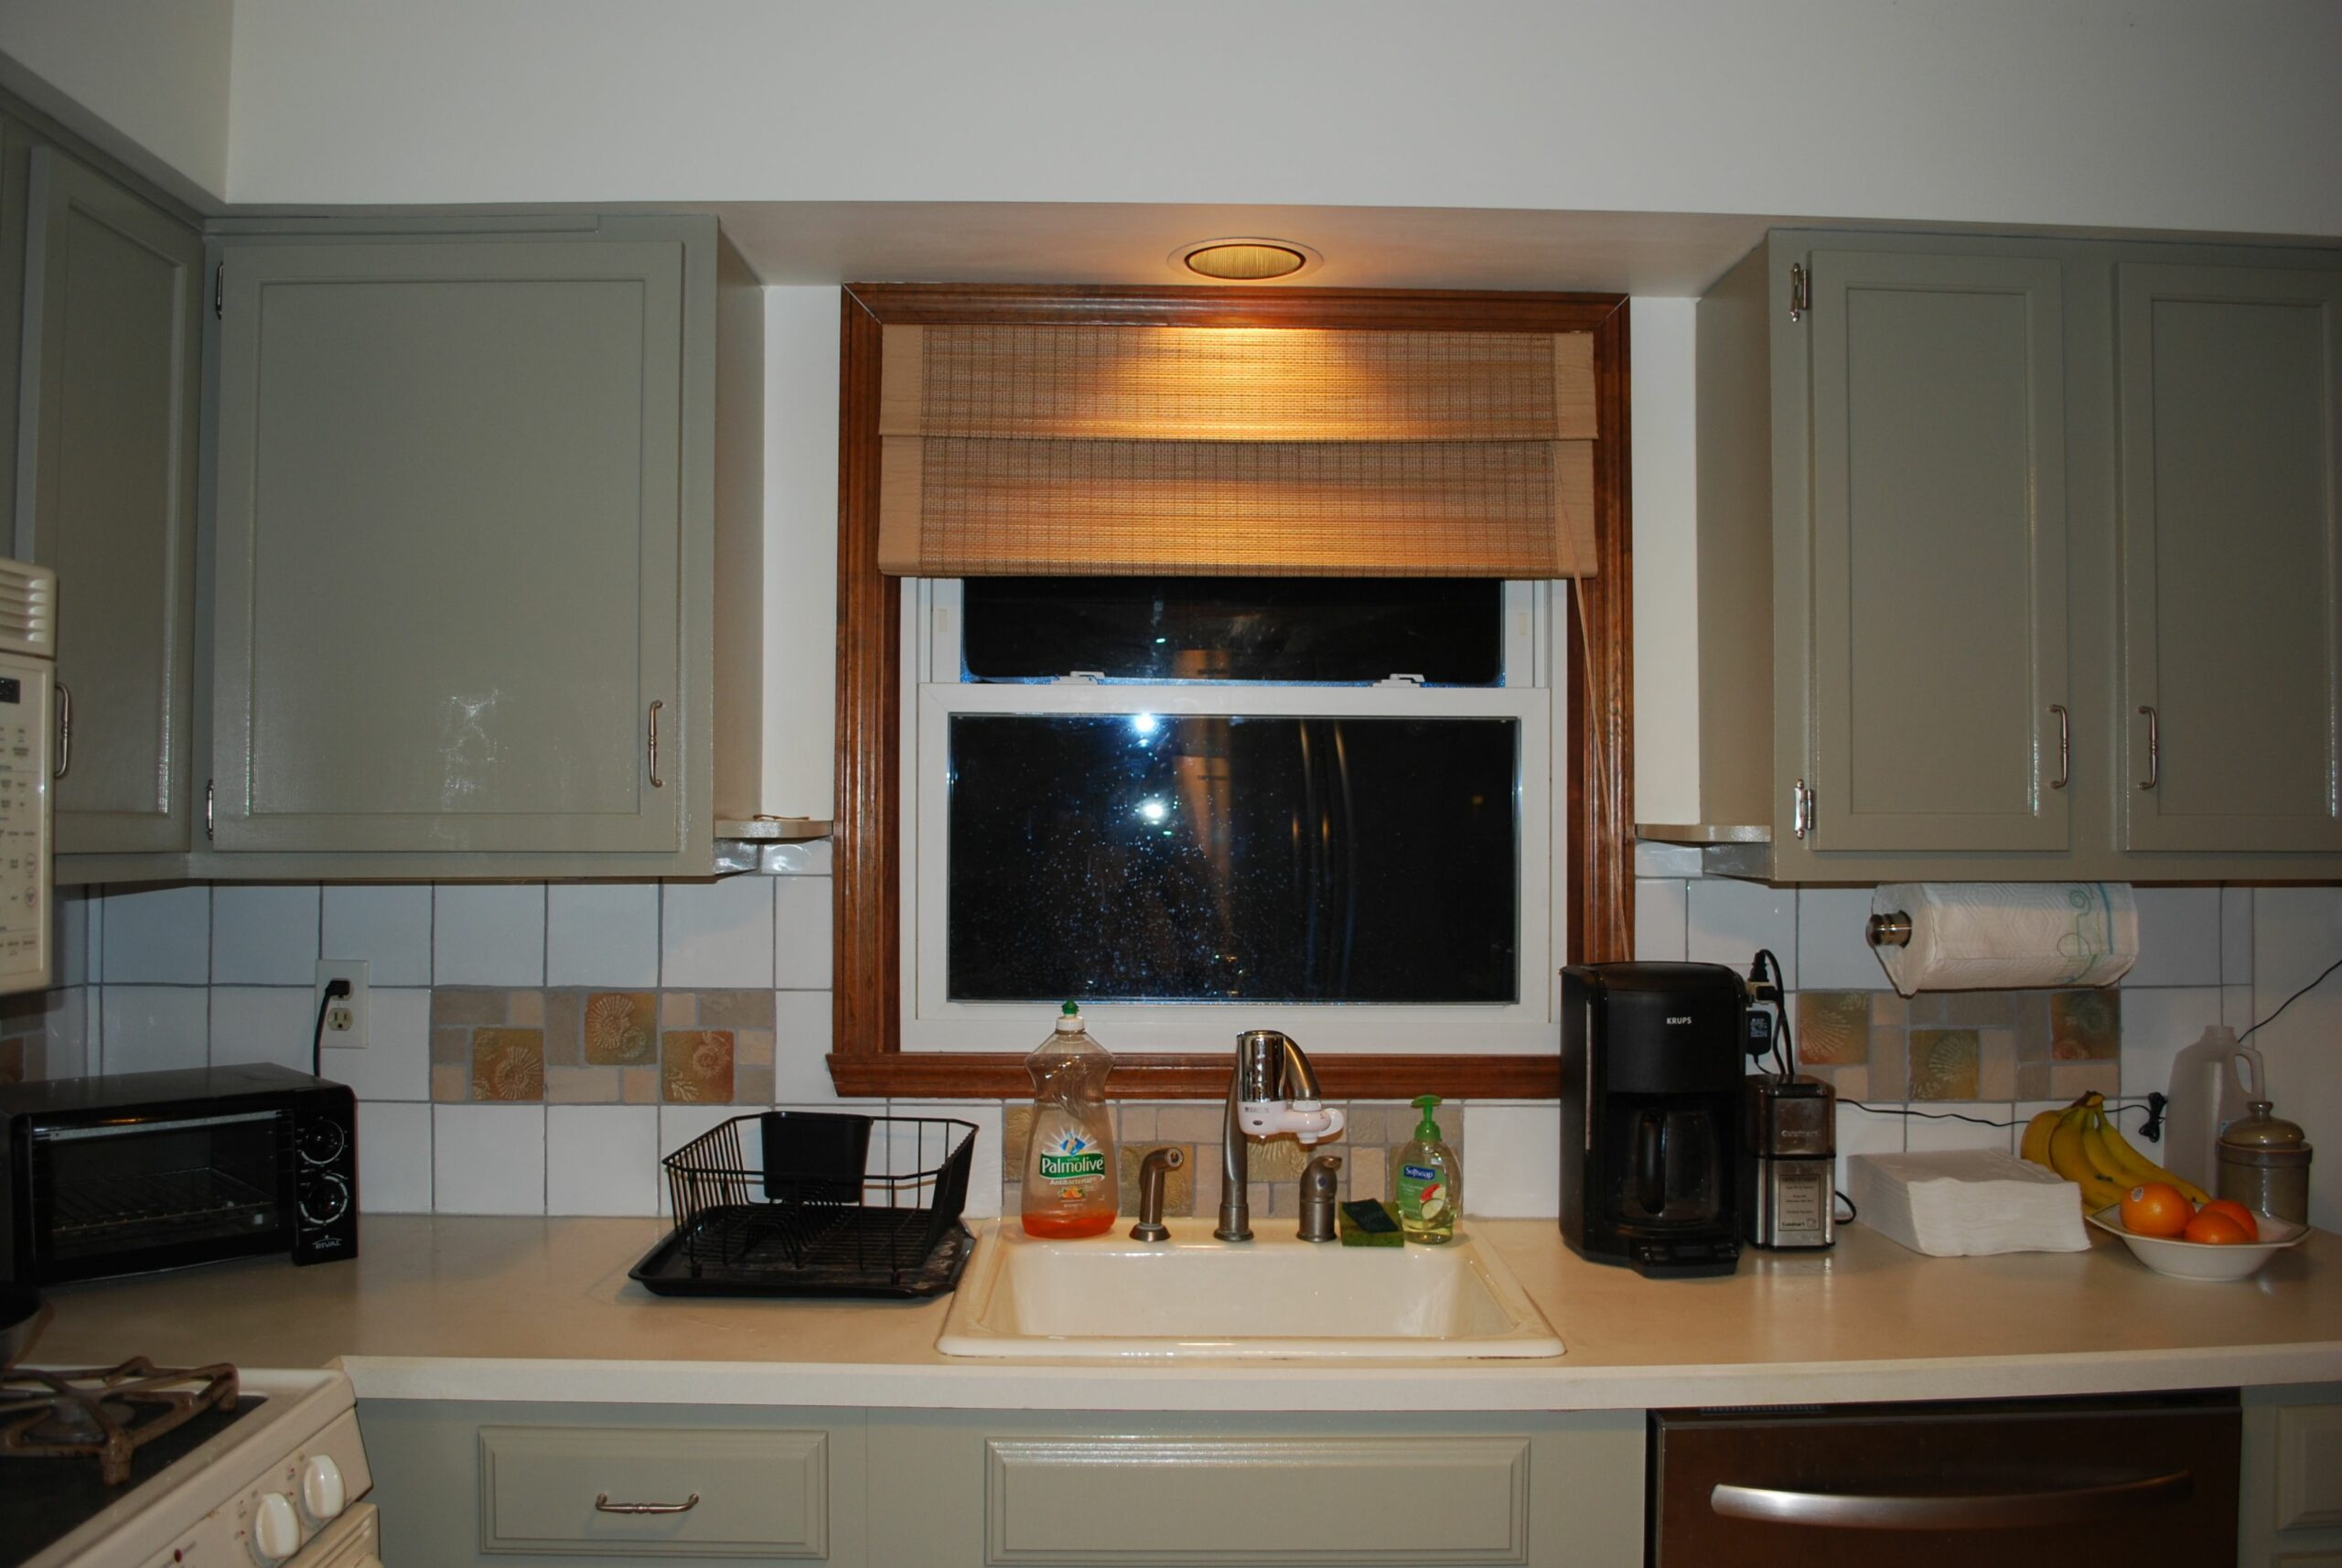 Picture of Kitchen Window Treatment Idea over The Sink